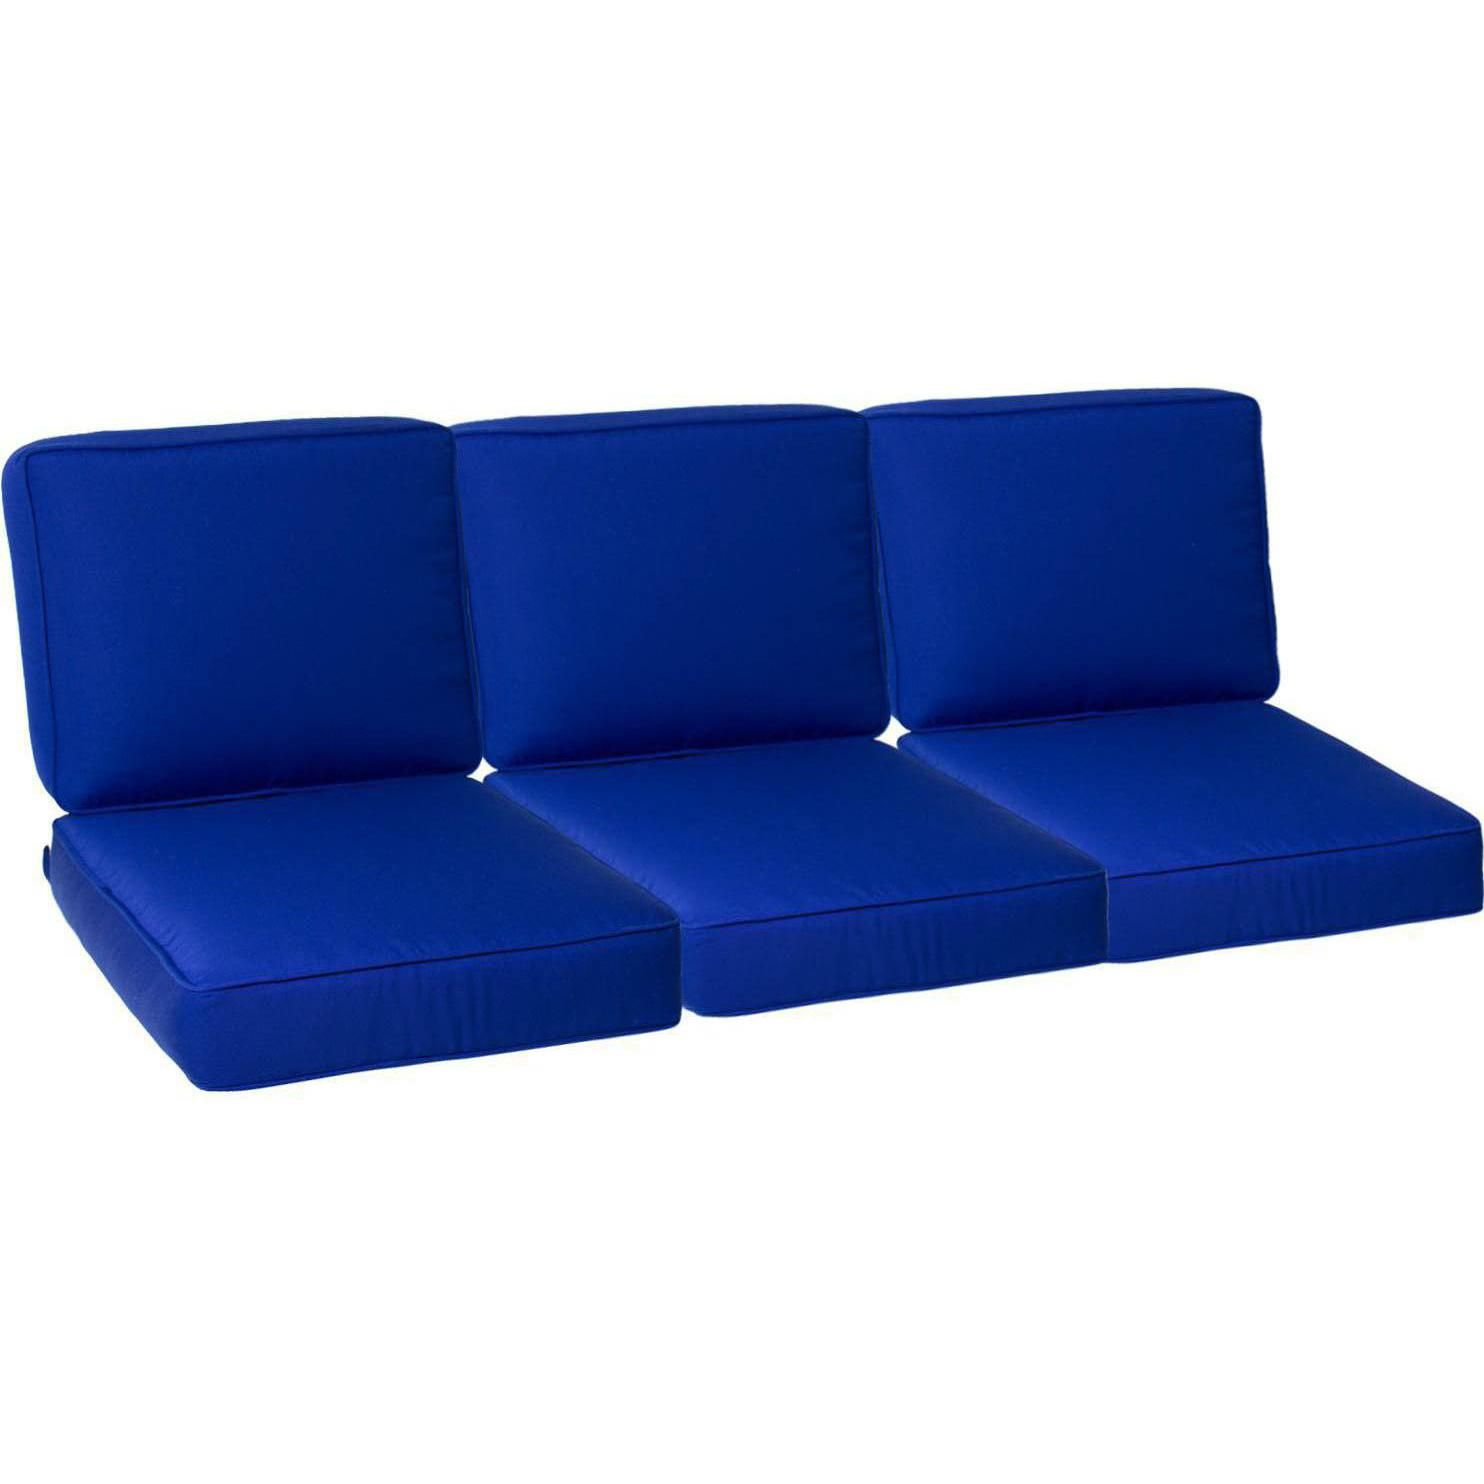 Attirant Sunbrella Canvas True Blue Small Outdoor Replacement Sofa Cushion Set W/  Piping By UltimatePatio.com